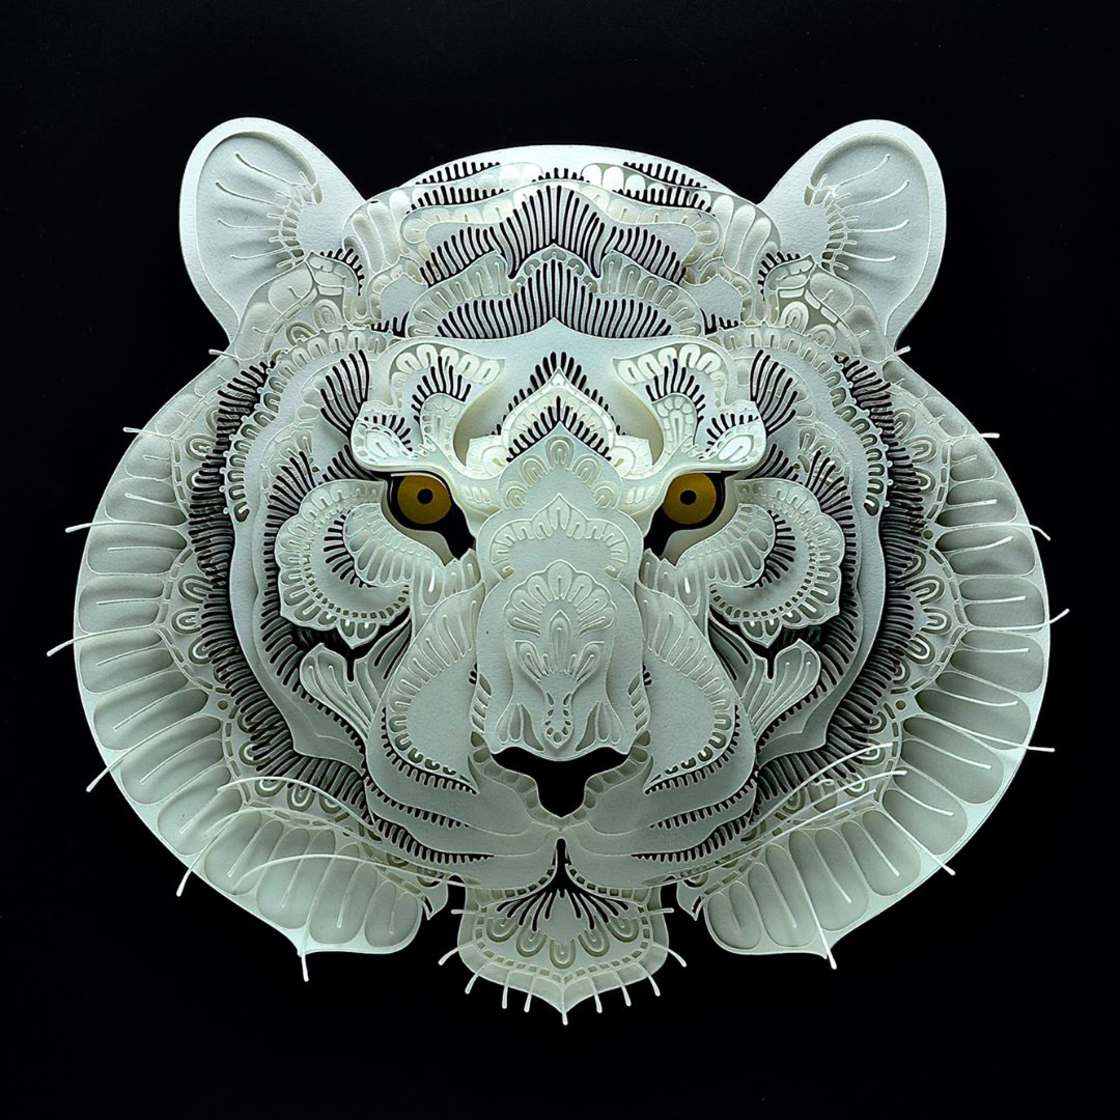 Endangered Species - Delicate paper cuts for a good cause